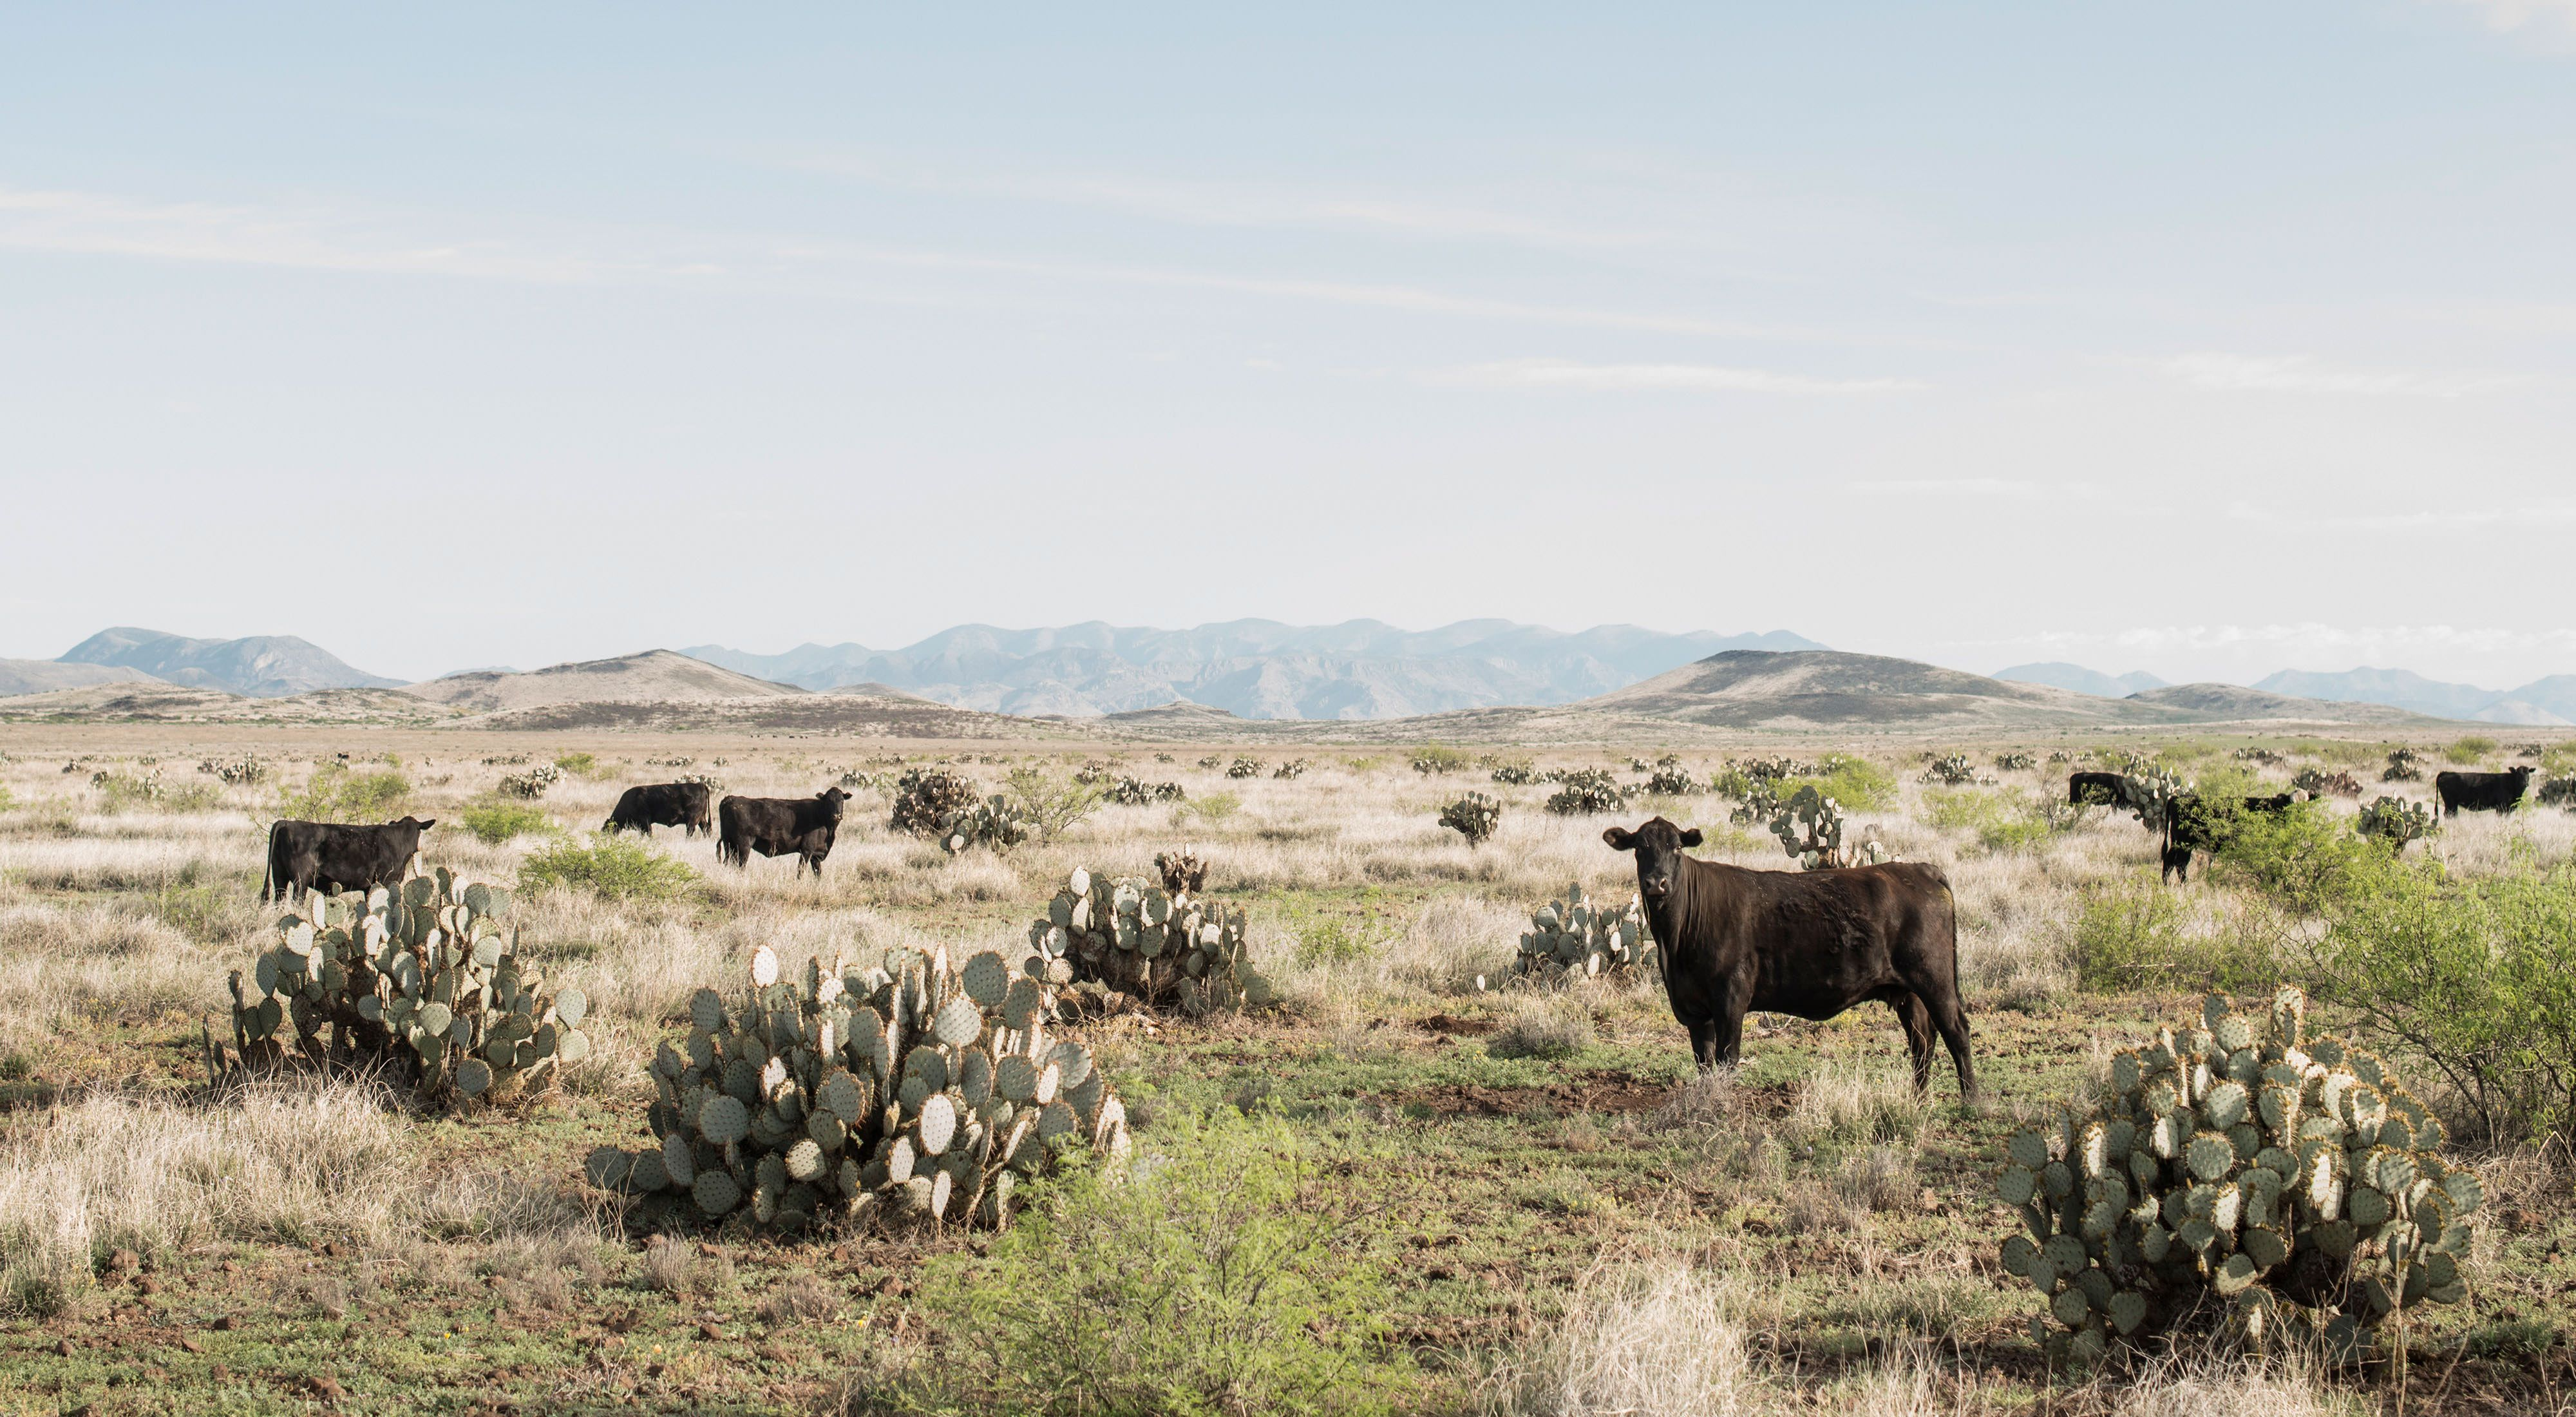 Cattle graze among cacti in the Malpai Borderlands